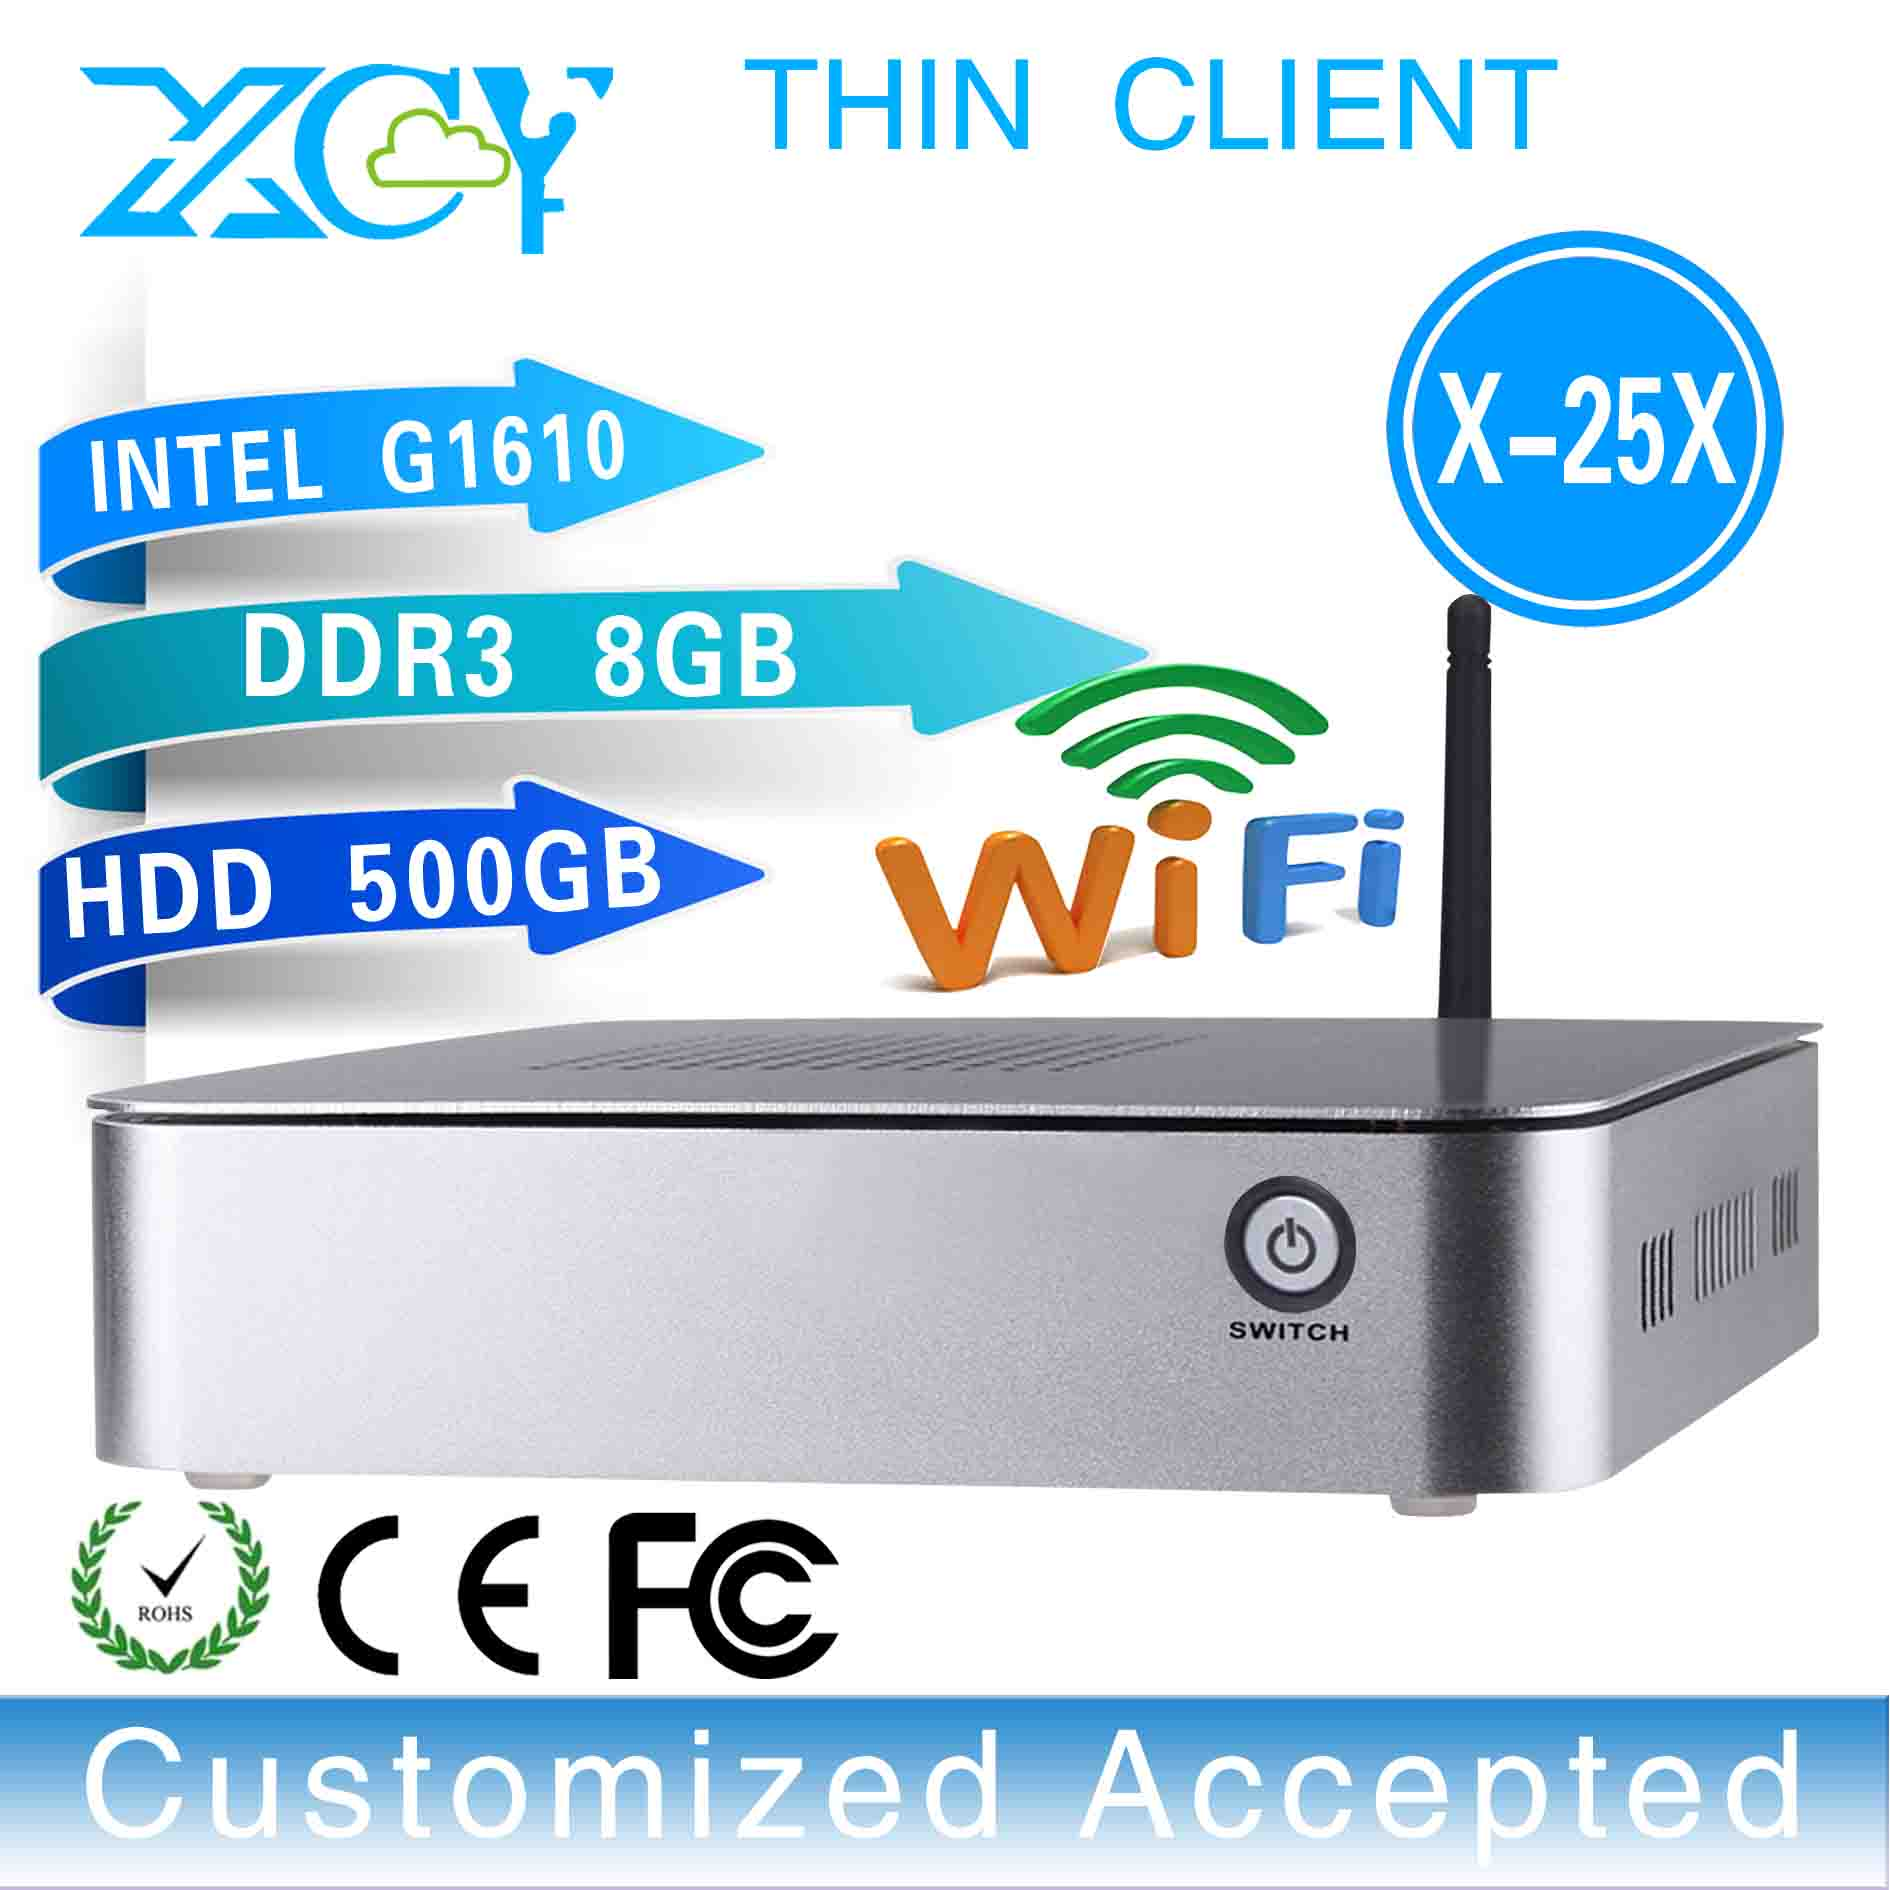 Mini Itx Mini Pc Optiplex Thin Client X-25x G1610 Wifi Support Os WIN7, Linux, Windows XP,Ubuntu Debian 8GB RAM 500GB HDD(China (Mainland))